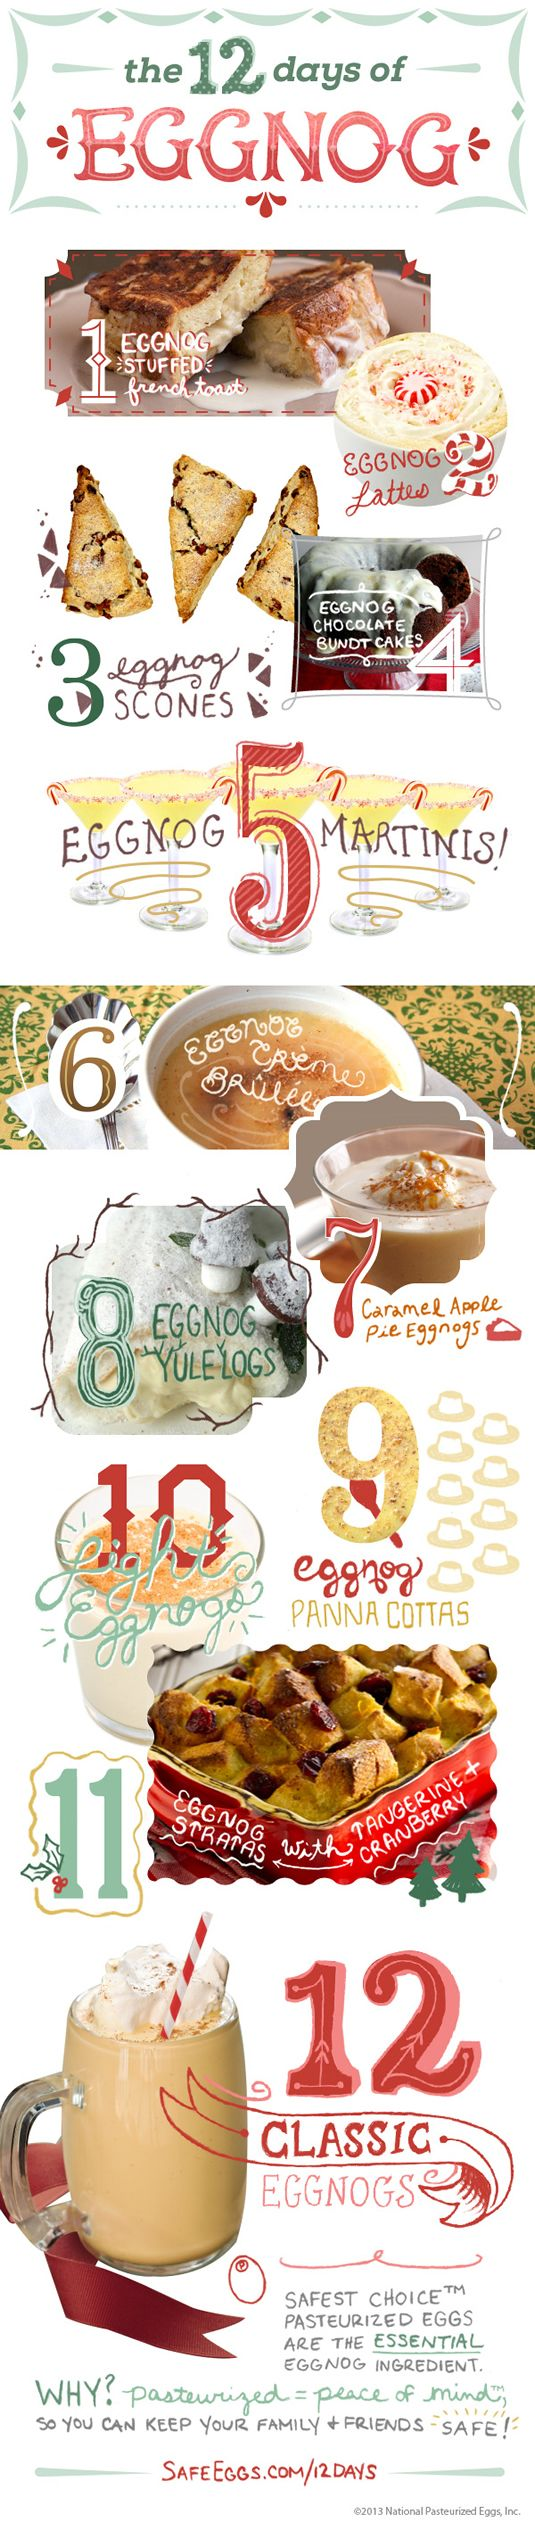 12 days of eggnog recipes, both drinkable and edible!  These recipes have eggnog covered all day from breakfast to dessert. Safest Choice™ P...